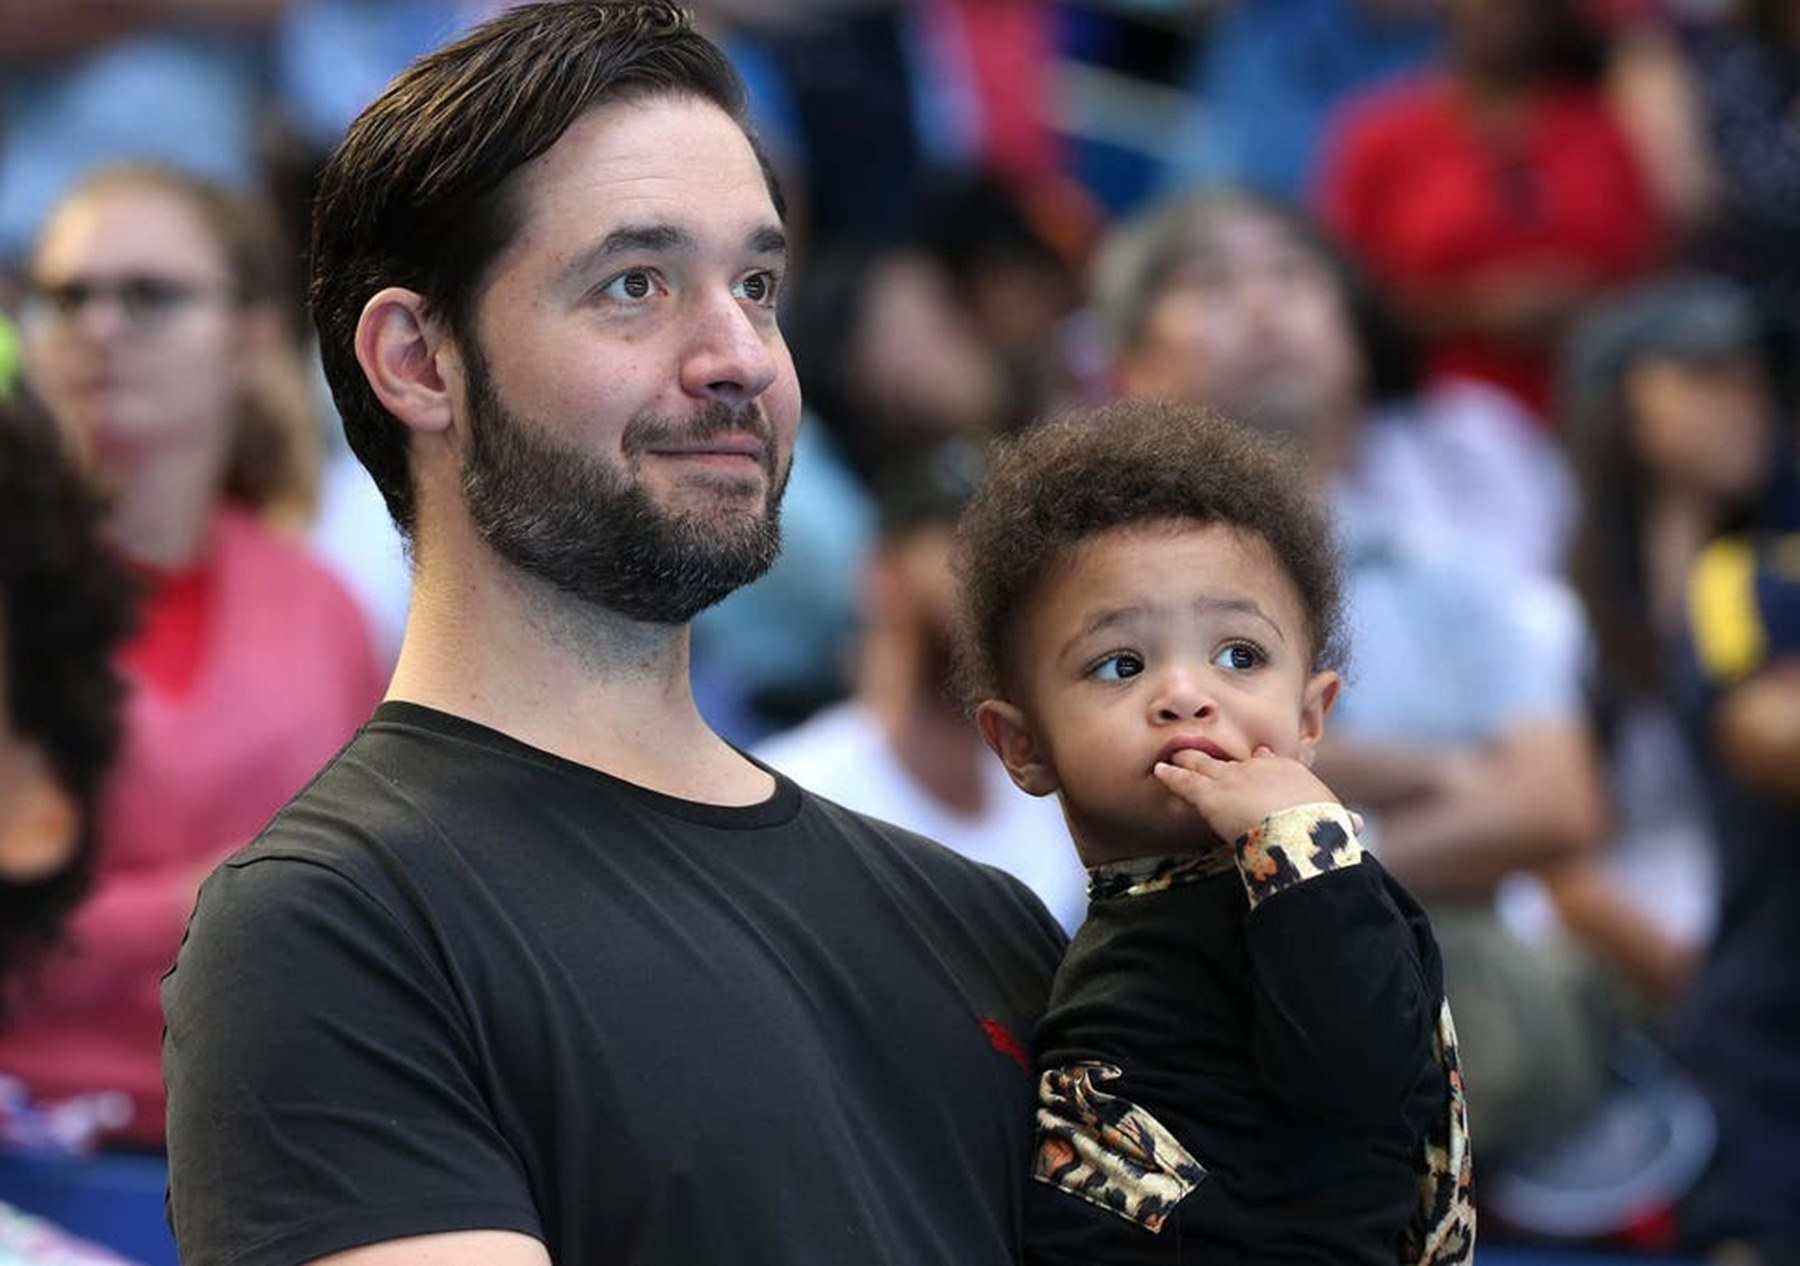 Alexis Ohanian Jr. Serena Williams Reddit